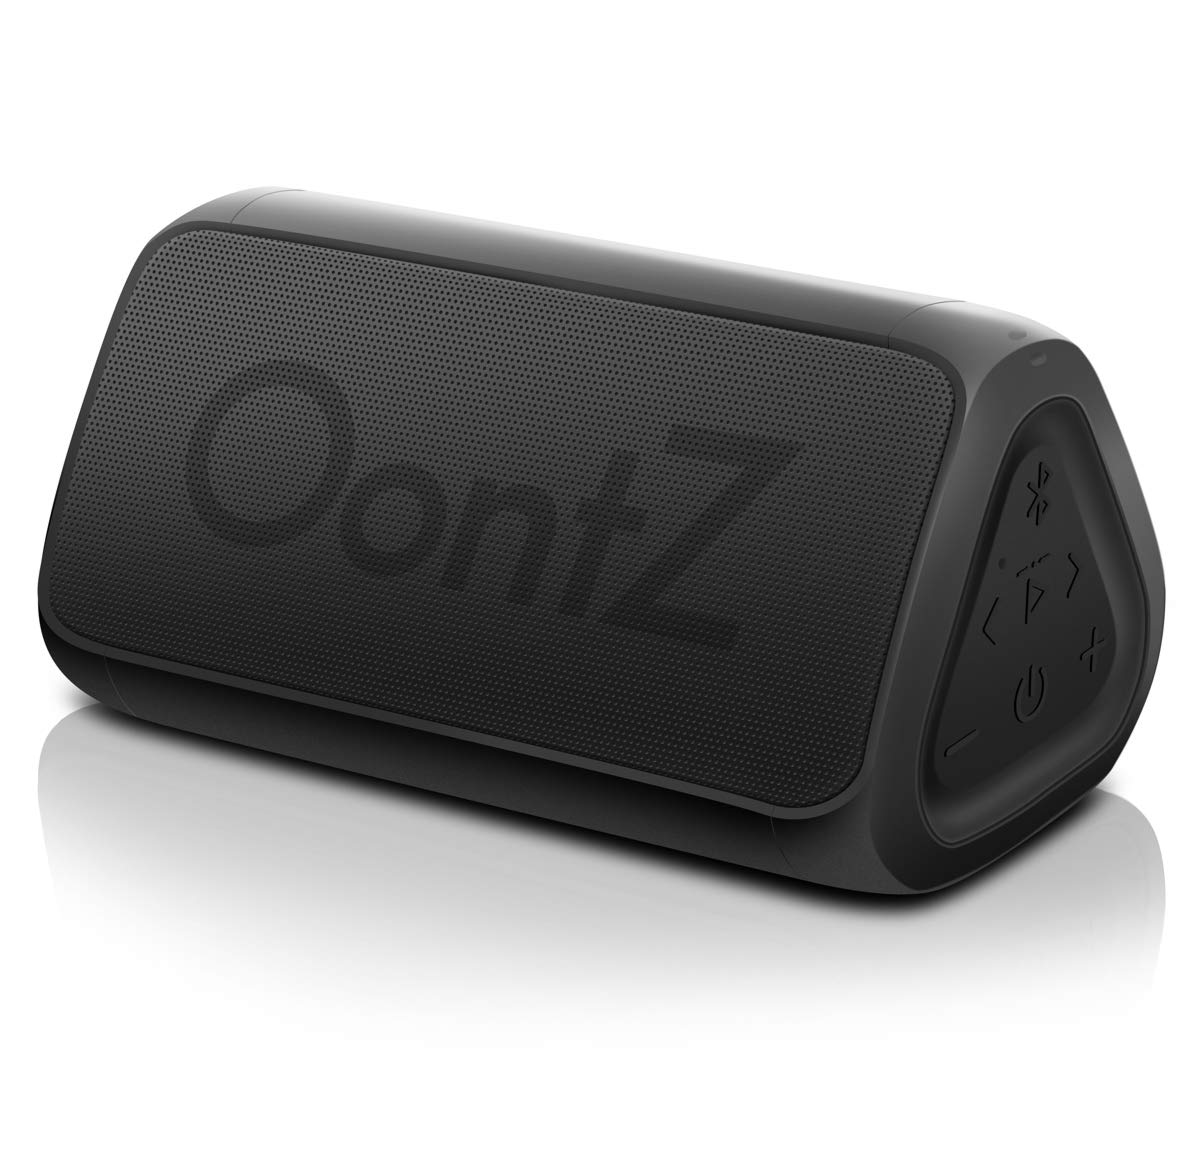 Cambridge SoundWorks OontZ Angle 3 RainDance IPX7 Waterproof Portable Bluetooth Speaker, 10 Watts Power, Louder, Crystal Clear Stereo, Richer Bass, 100ft Wireless Range, Bluetooth Speakers by Cambridge Soundworks (Image #1)